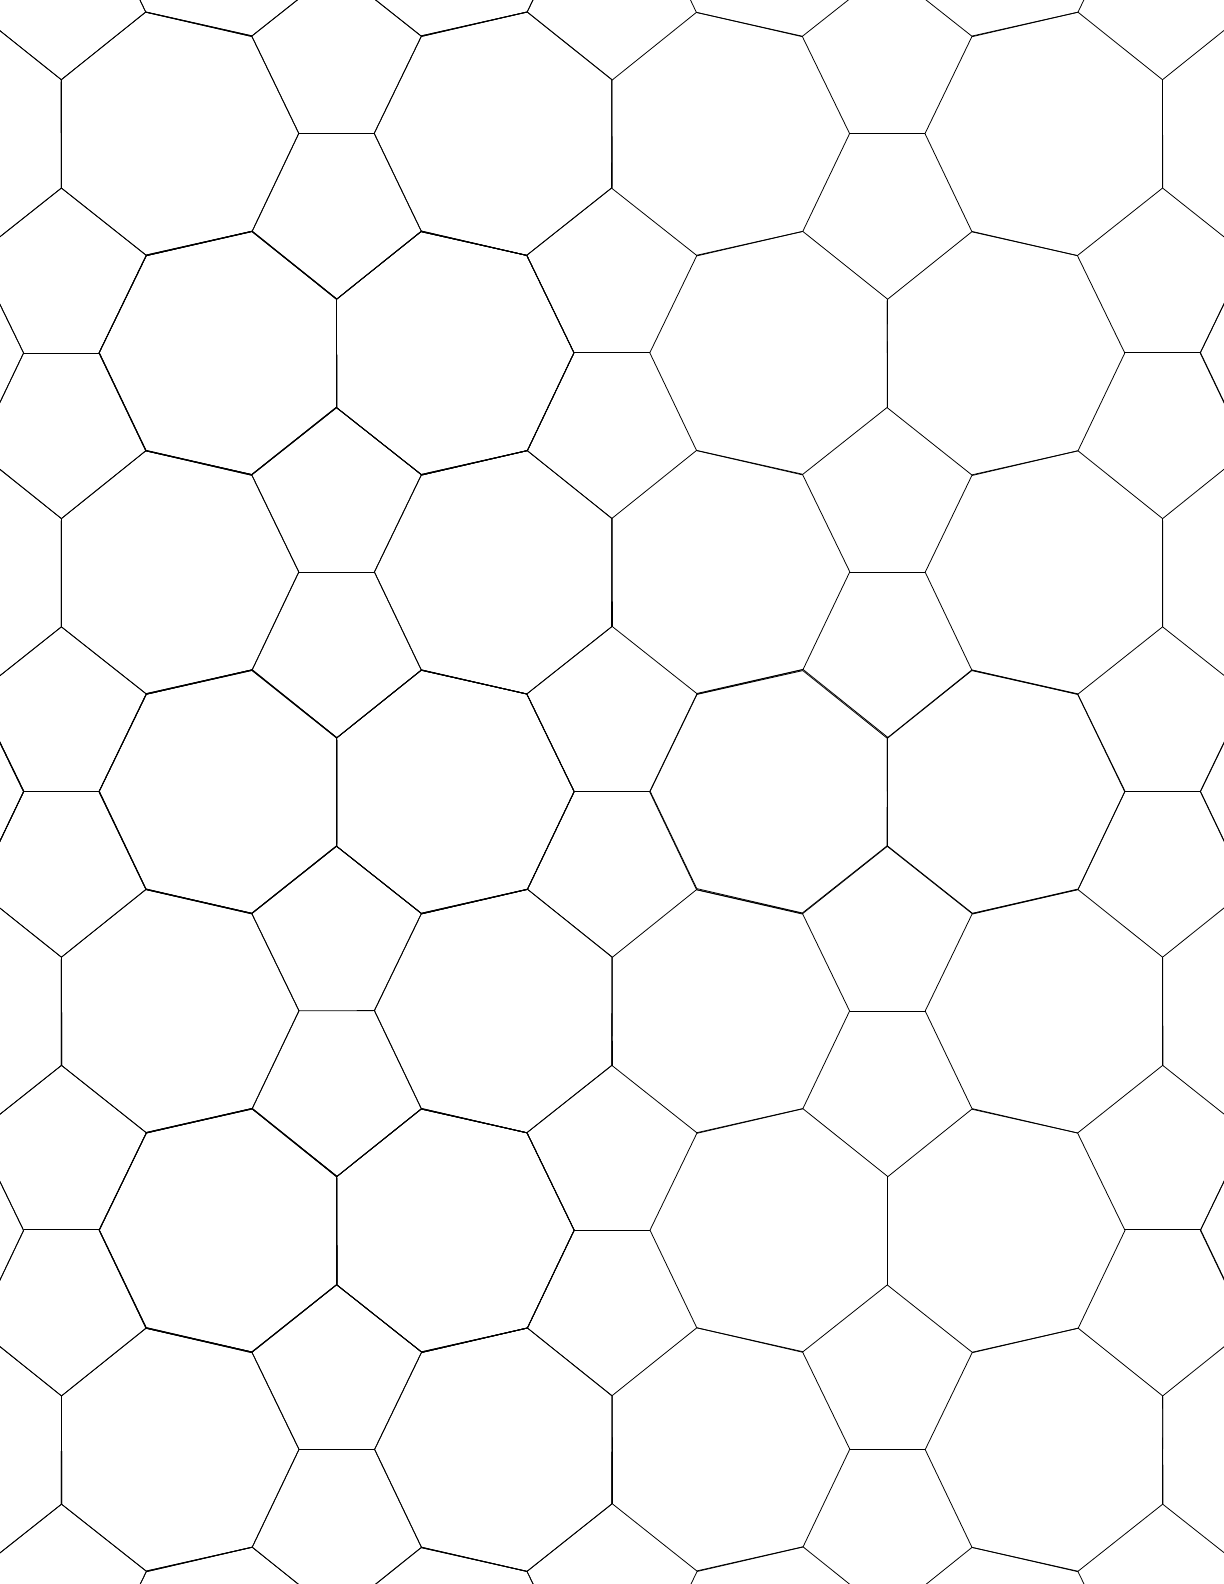 Tessellation Small Graph Paper (5.7.7, 5.7.5) Free Download